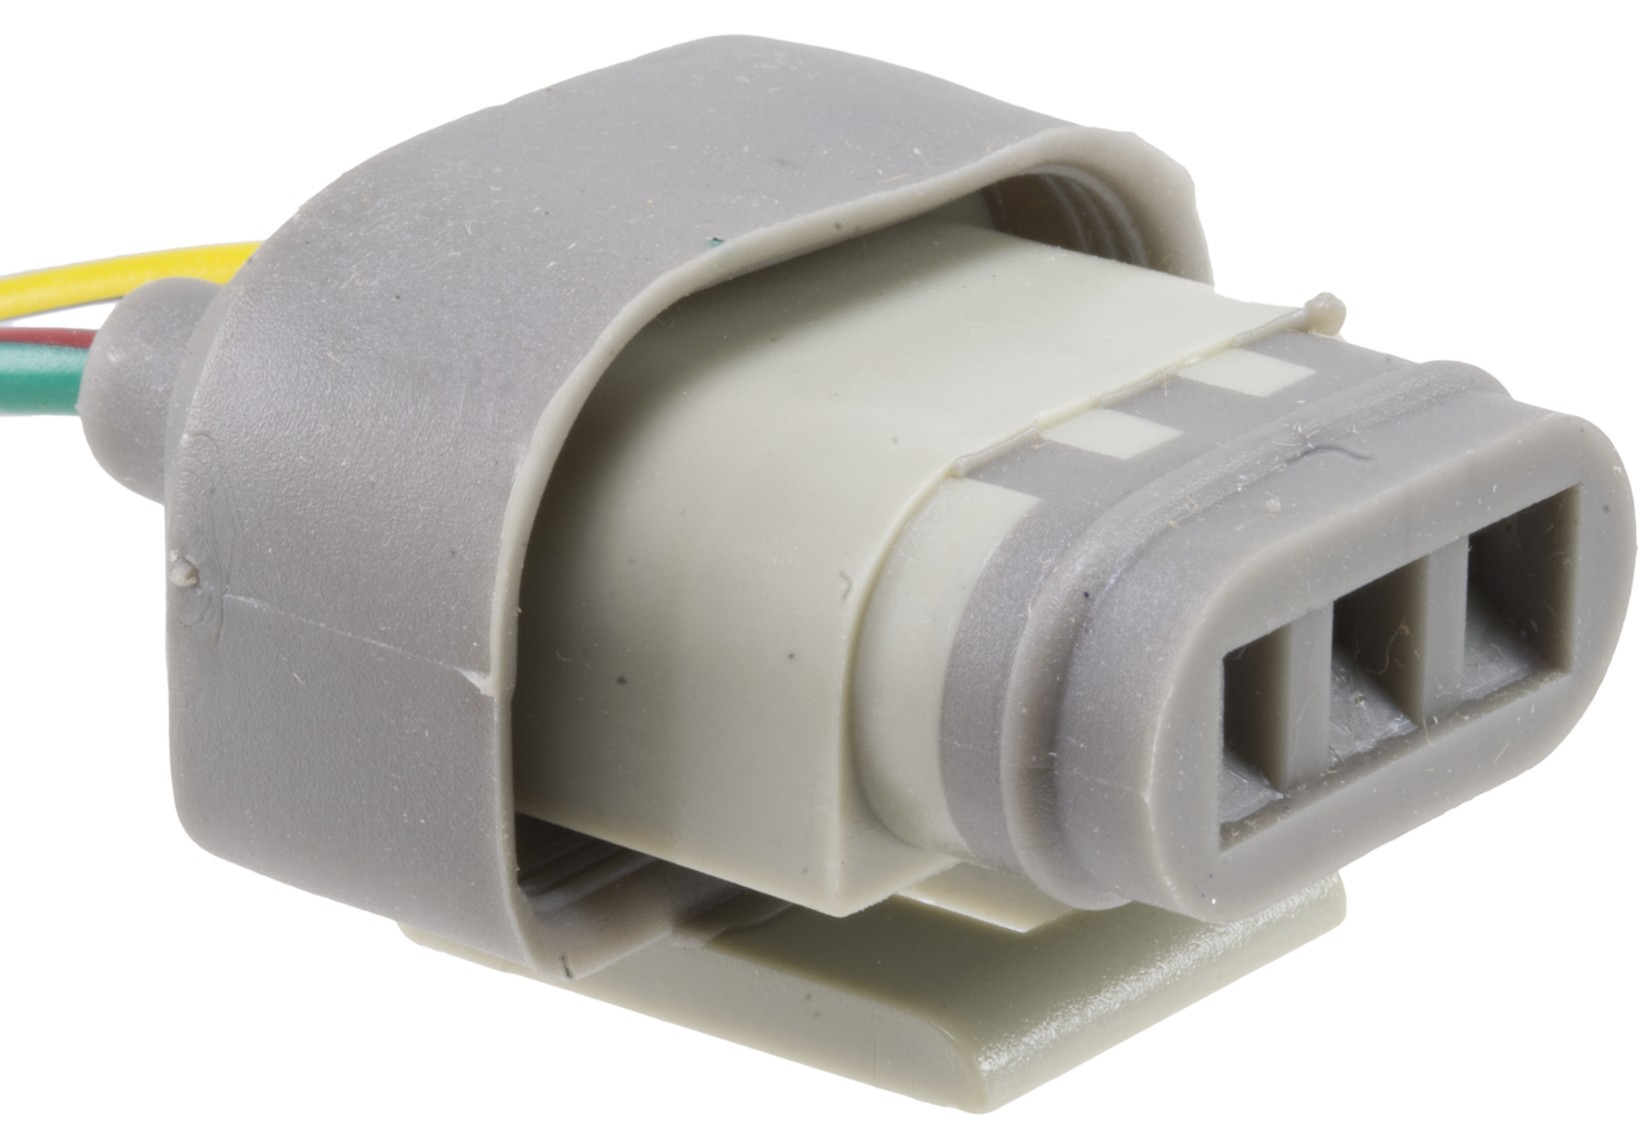 WELLS - Engine Coolant Level Sensor Connector - WEL 224